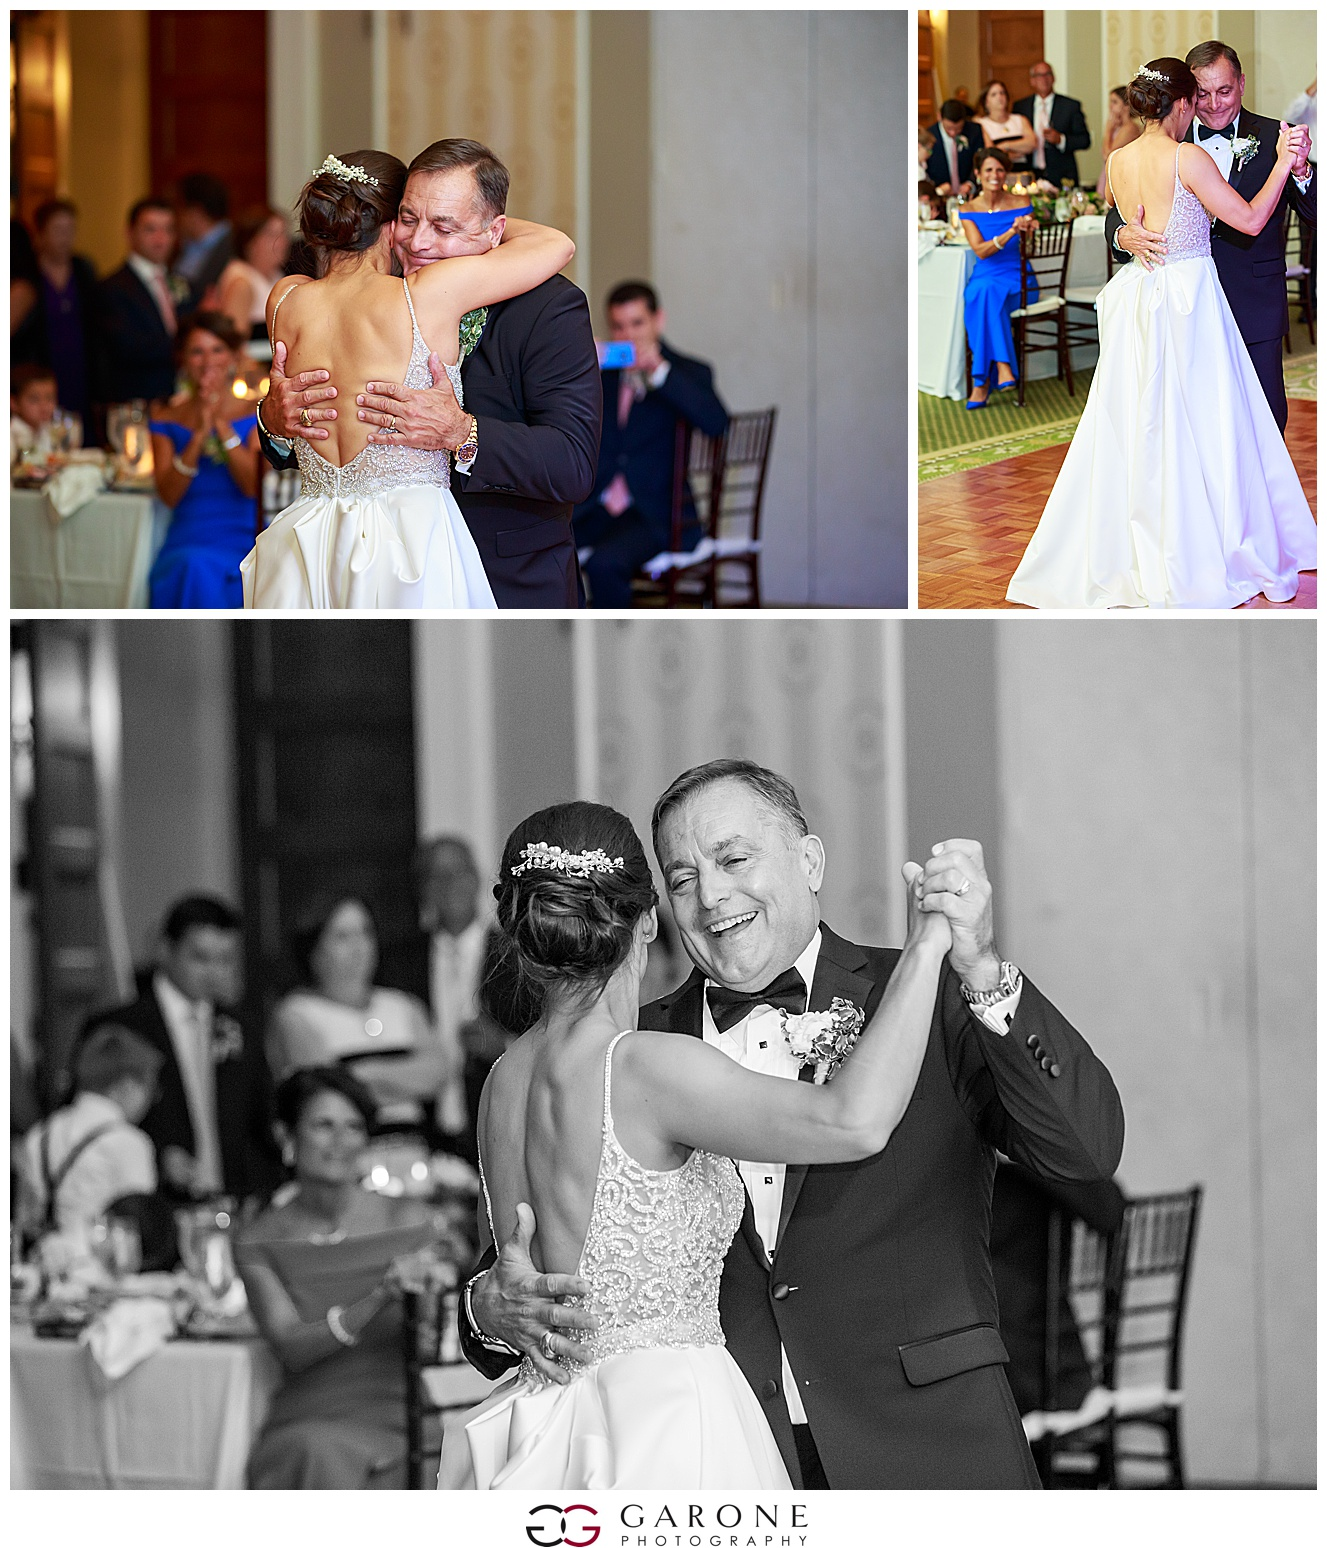 Omni_Mount_Washington_hotel_Wedding_White_Mountain_Wedding_Garone_Photography_0044.jpg